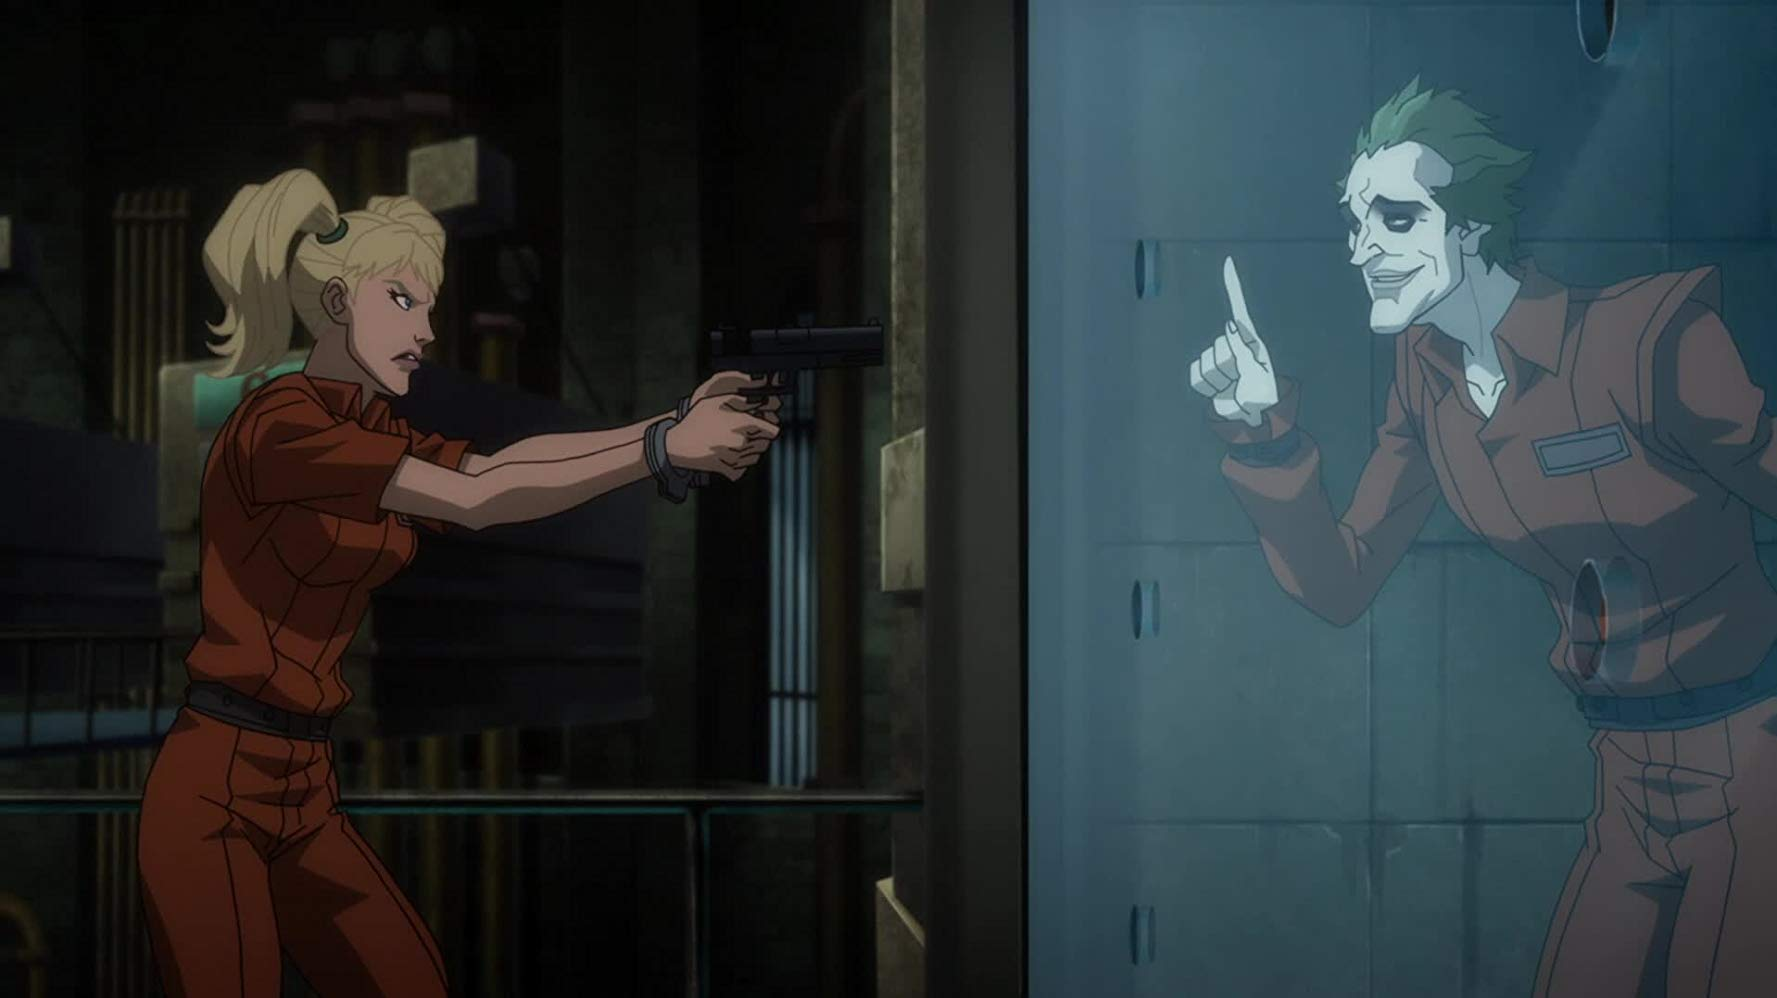 Harley Quinn reunites with The Joker in Batman Assault on Arkham (2014)